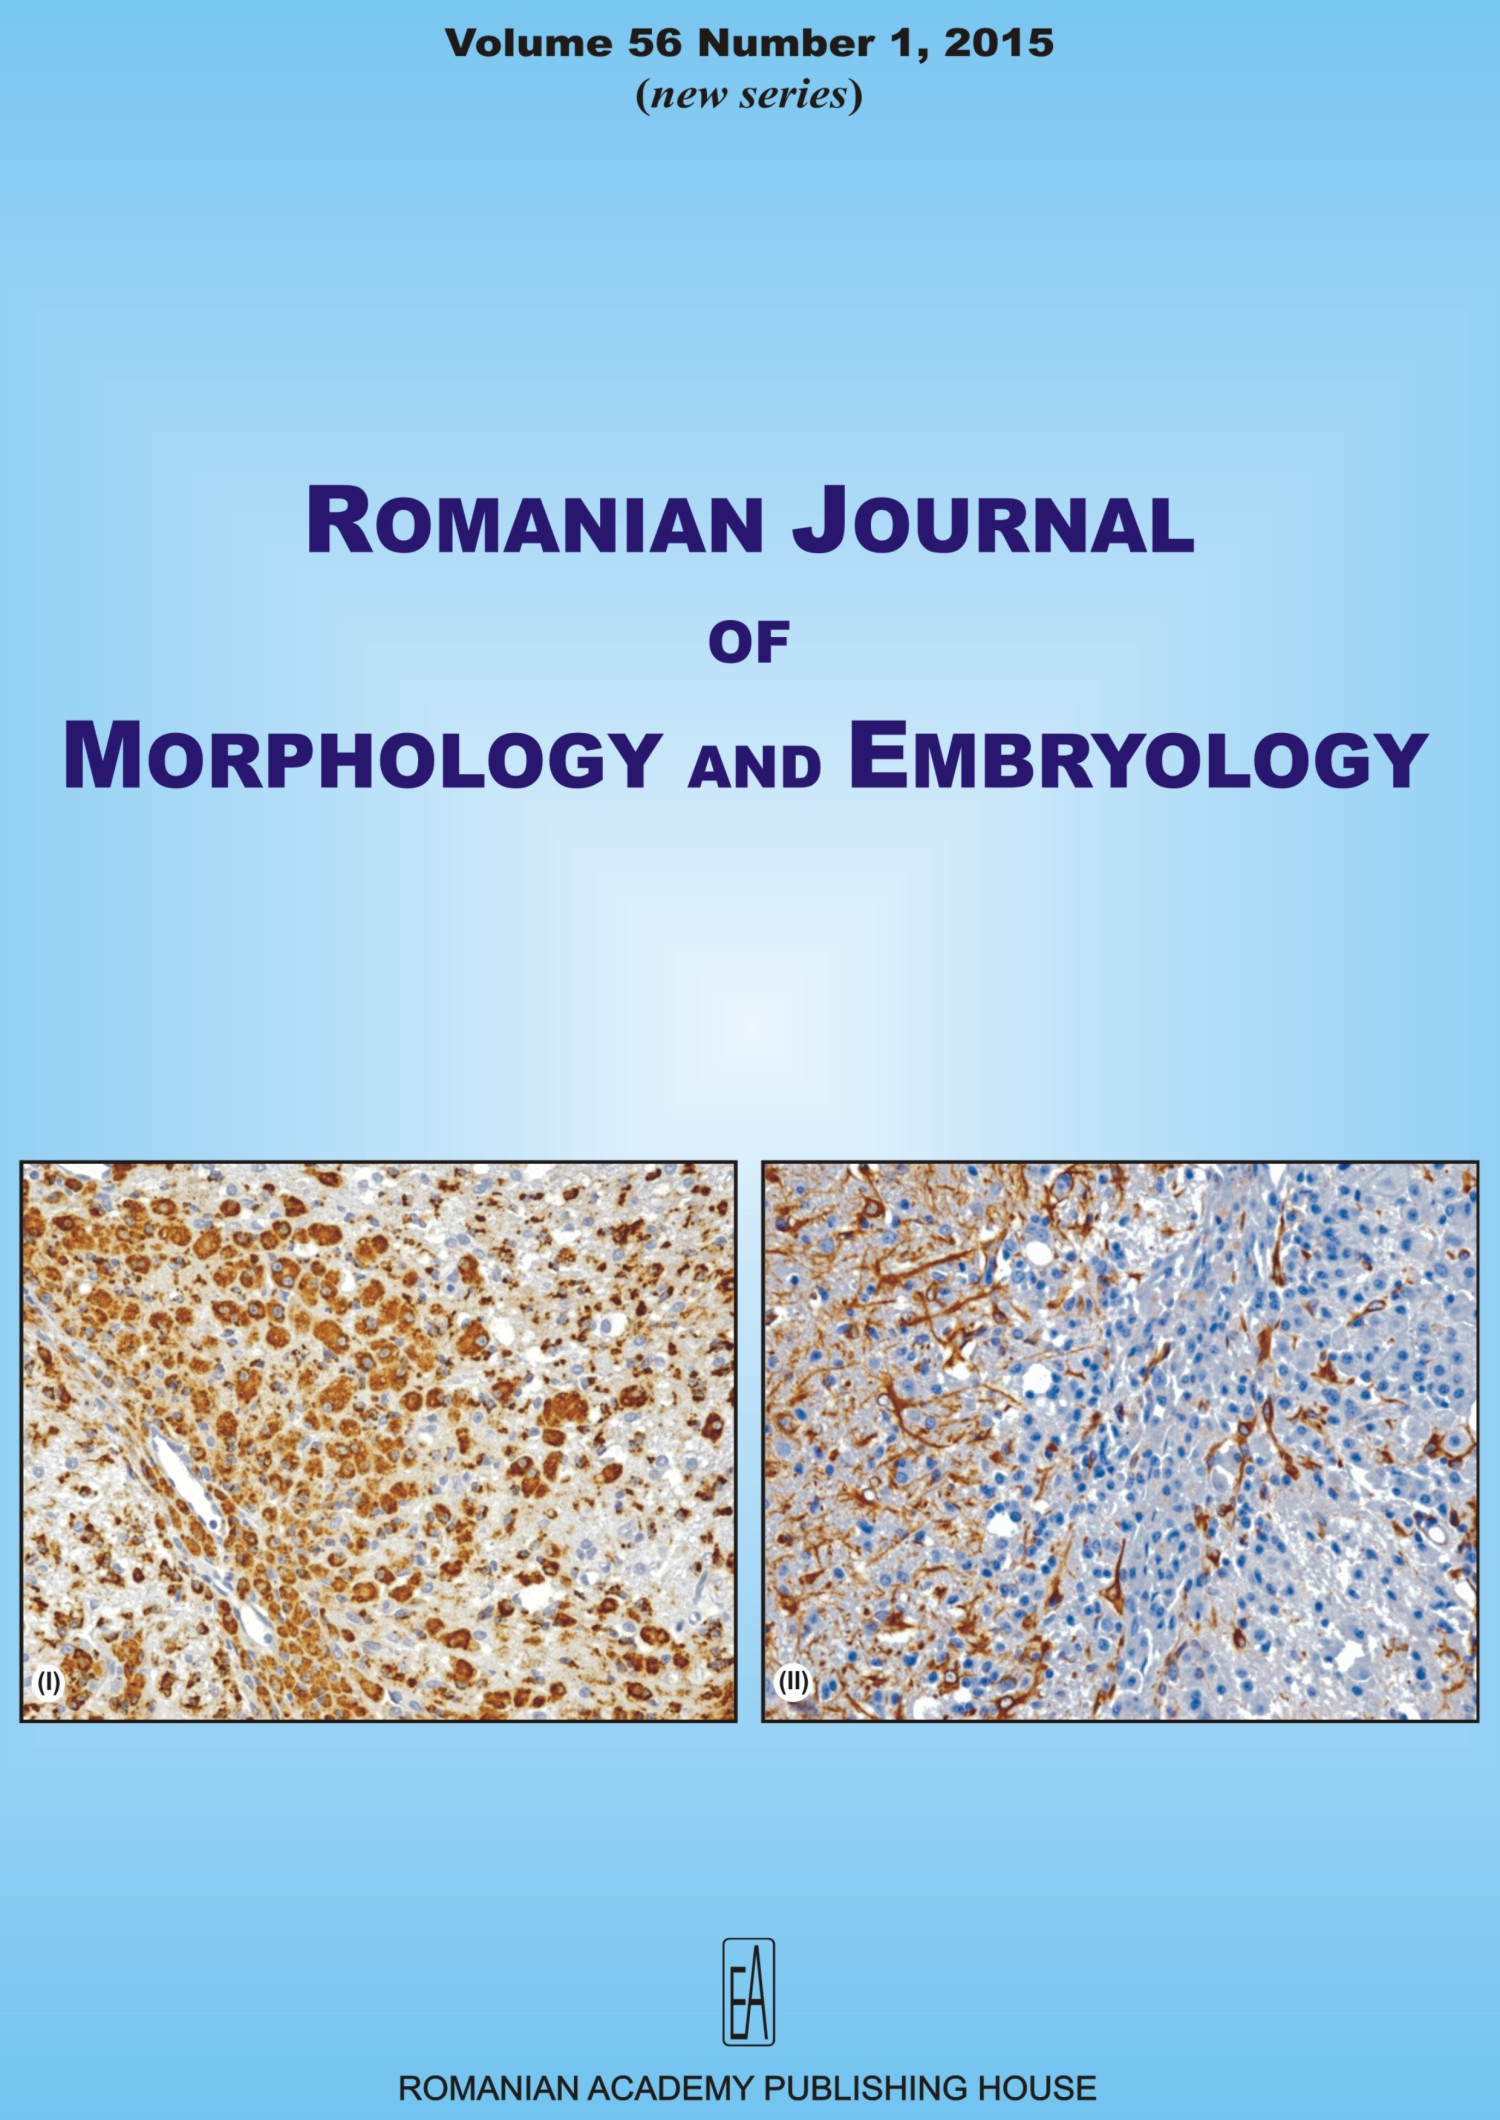 Romanian Journal of Morphology and Embryology, vol. 56 no. 1, 2015